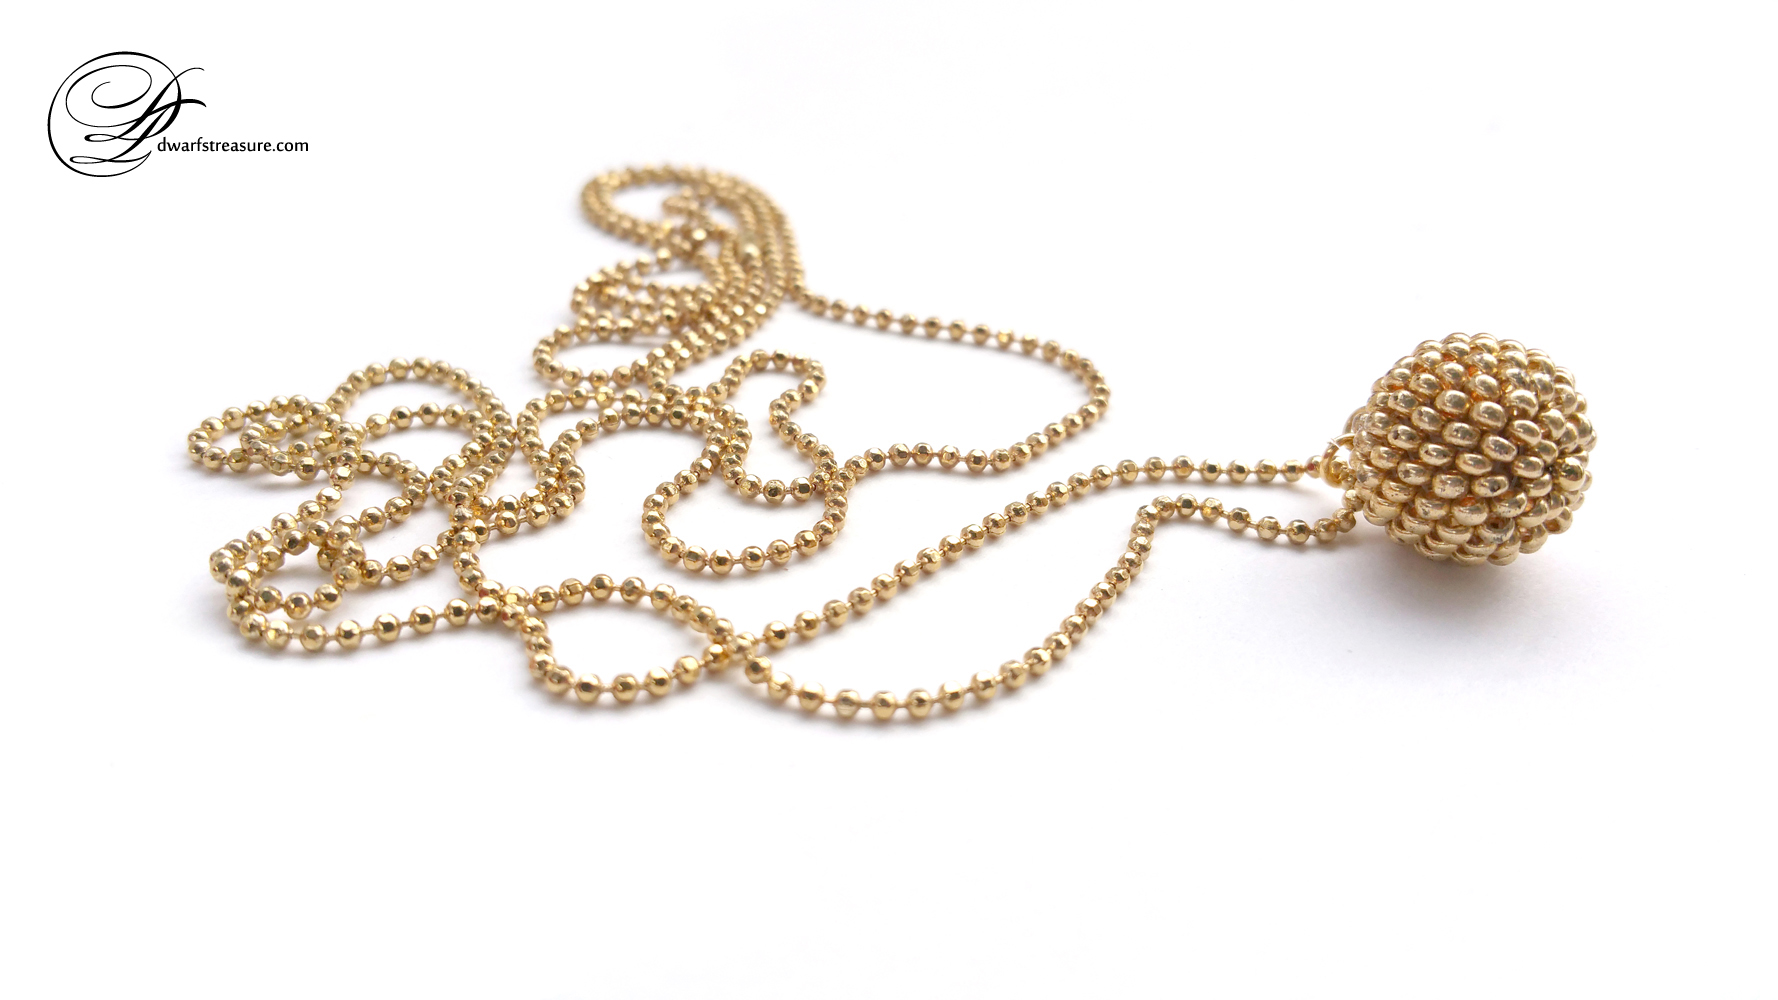 custom made ball chain necklace with gold beaded bead pendant